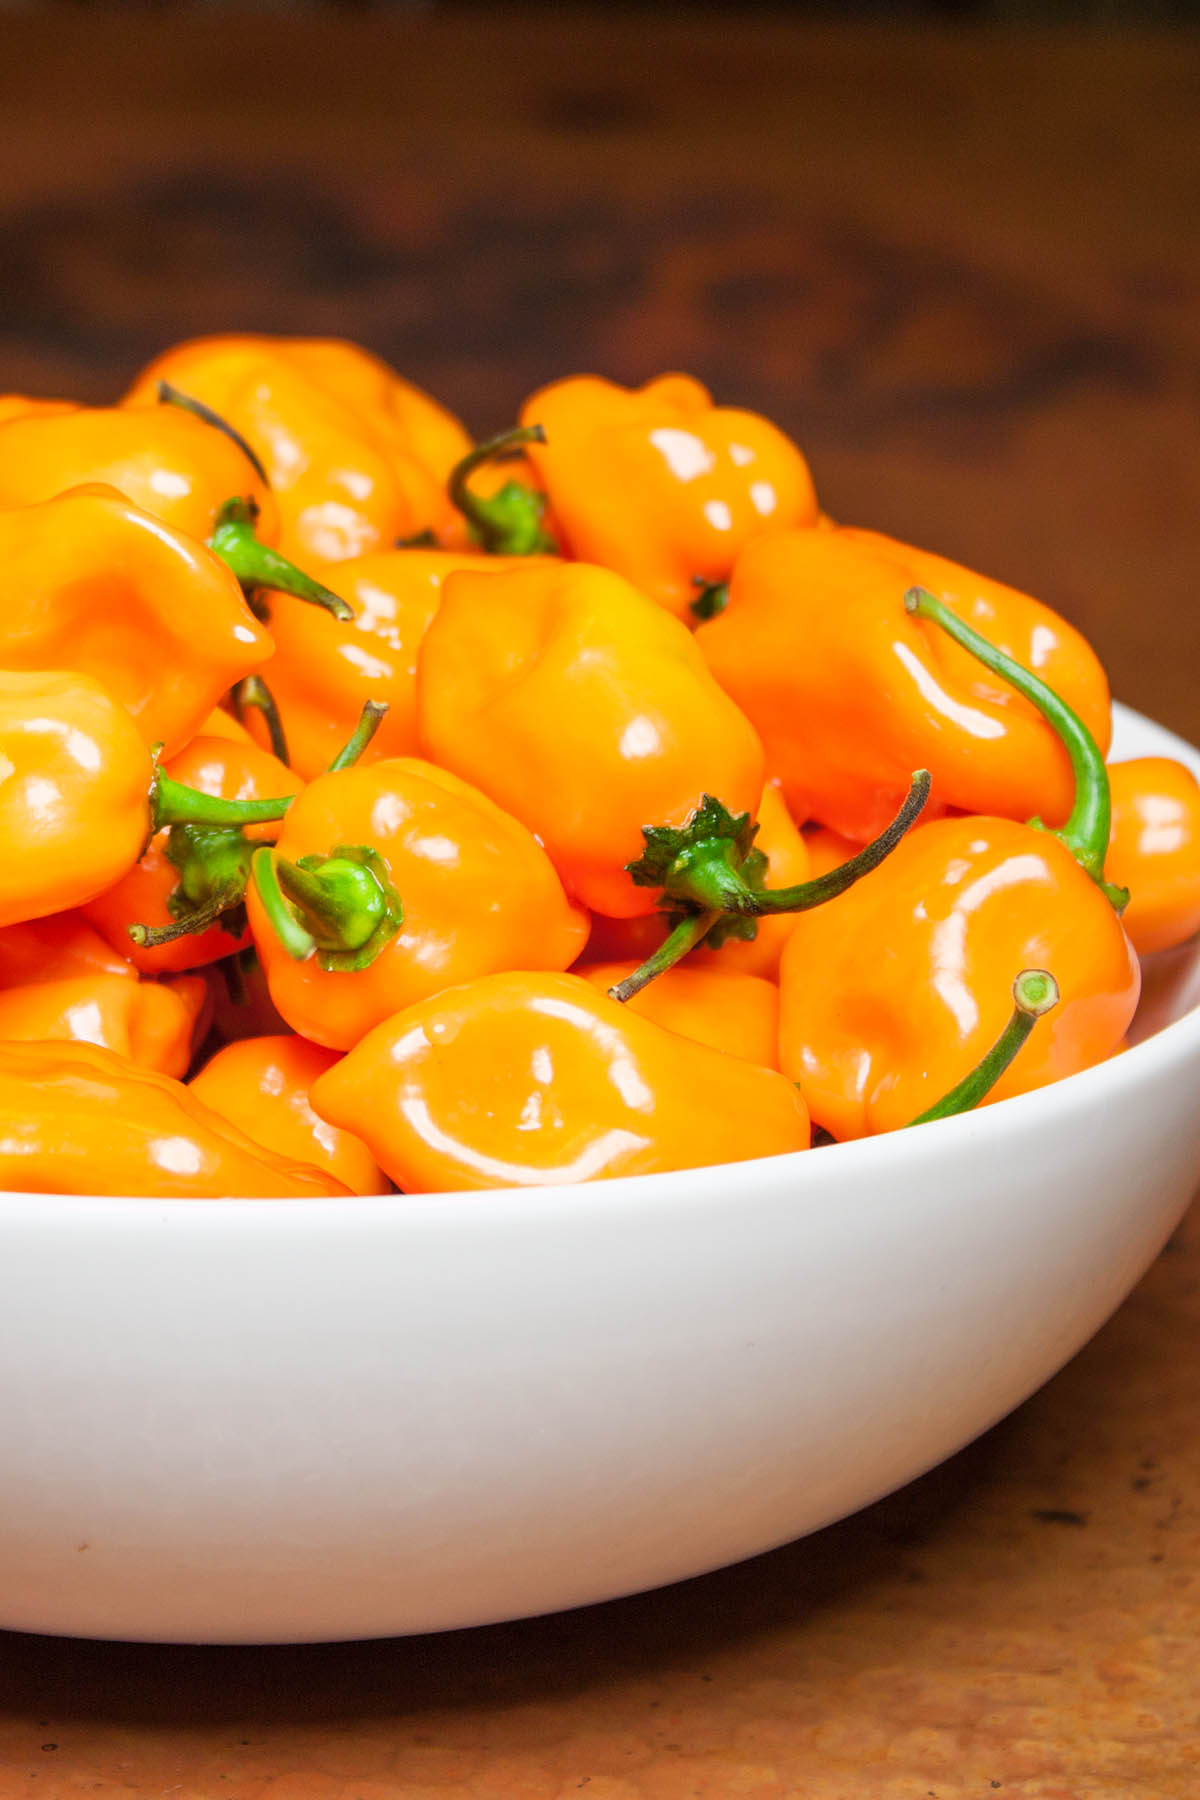 Habanero Peppers – How Hot Are They?